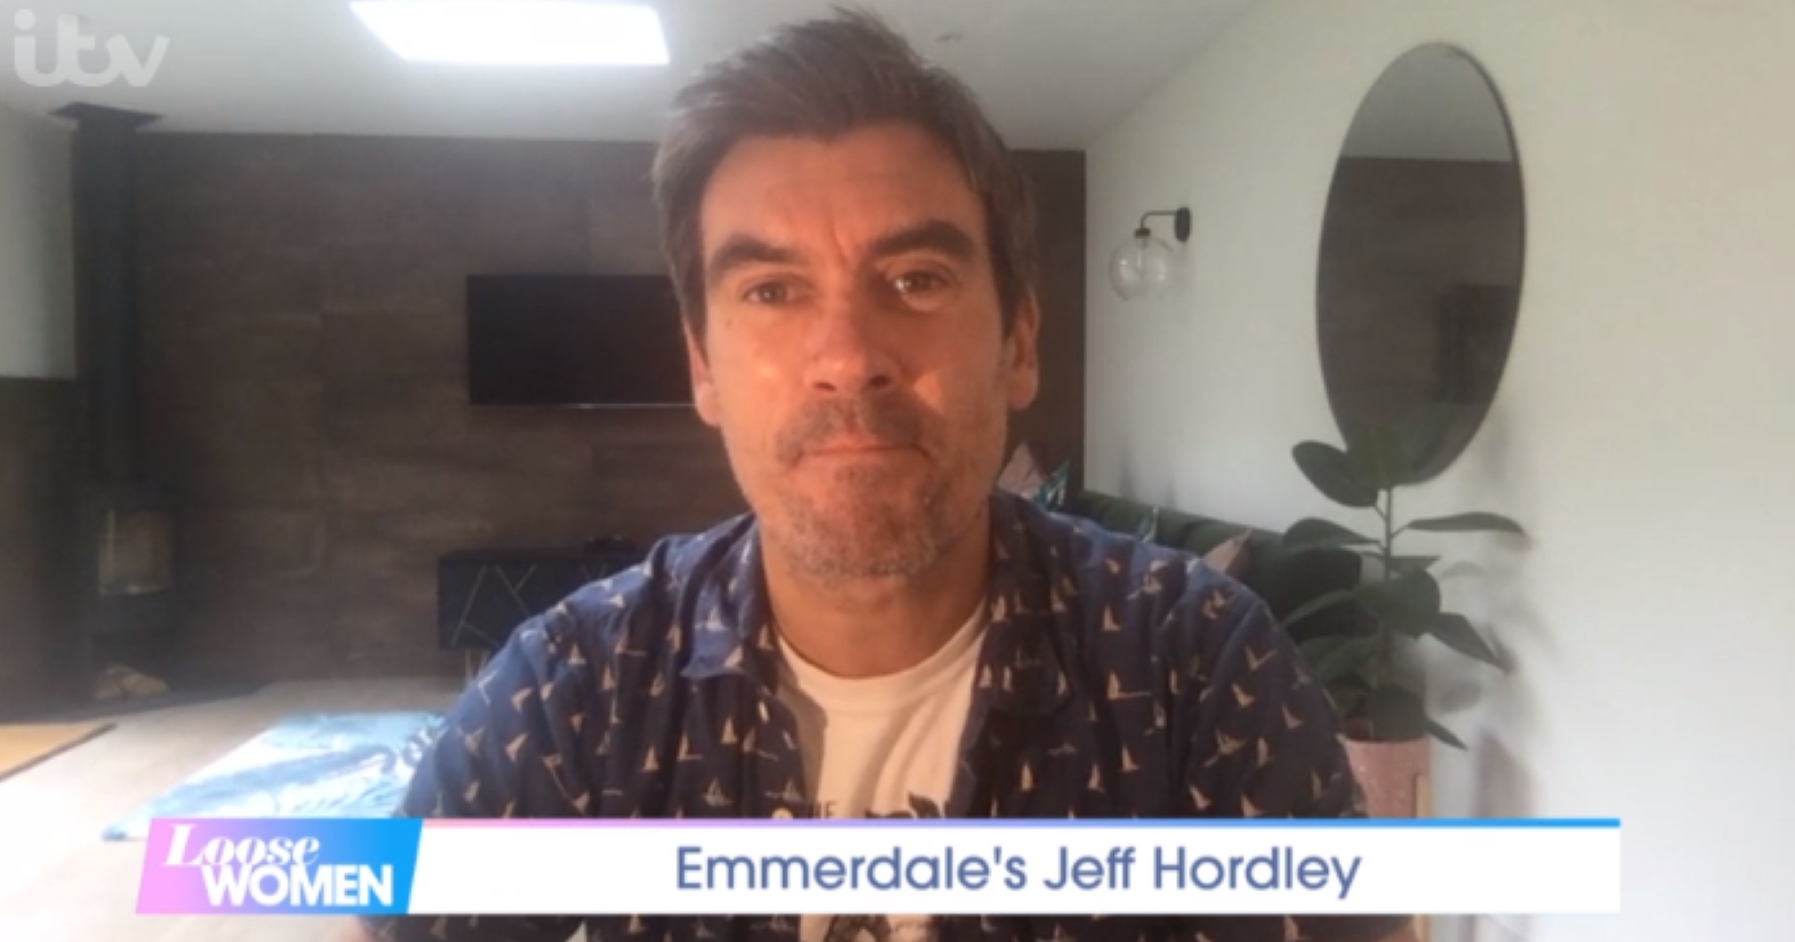 Emmerdale star Jeff Hordley introduces new puppy on Loose Women